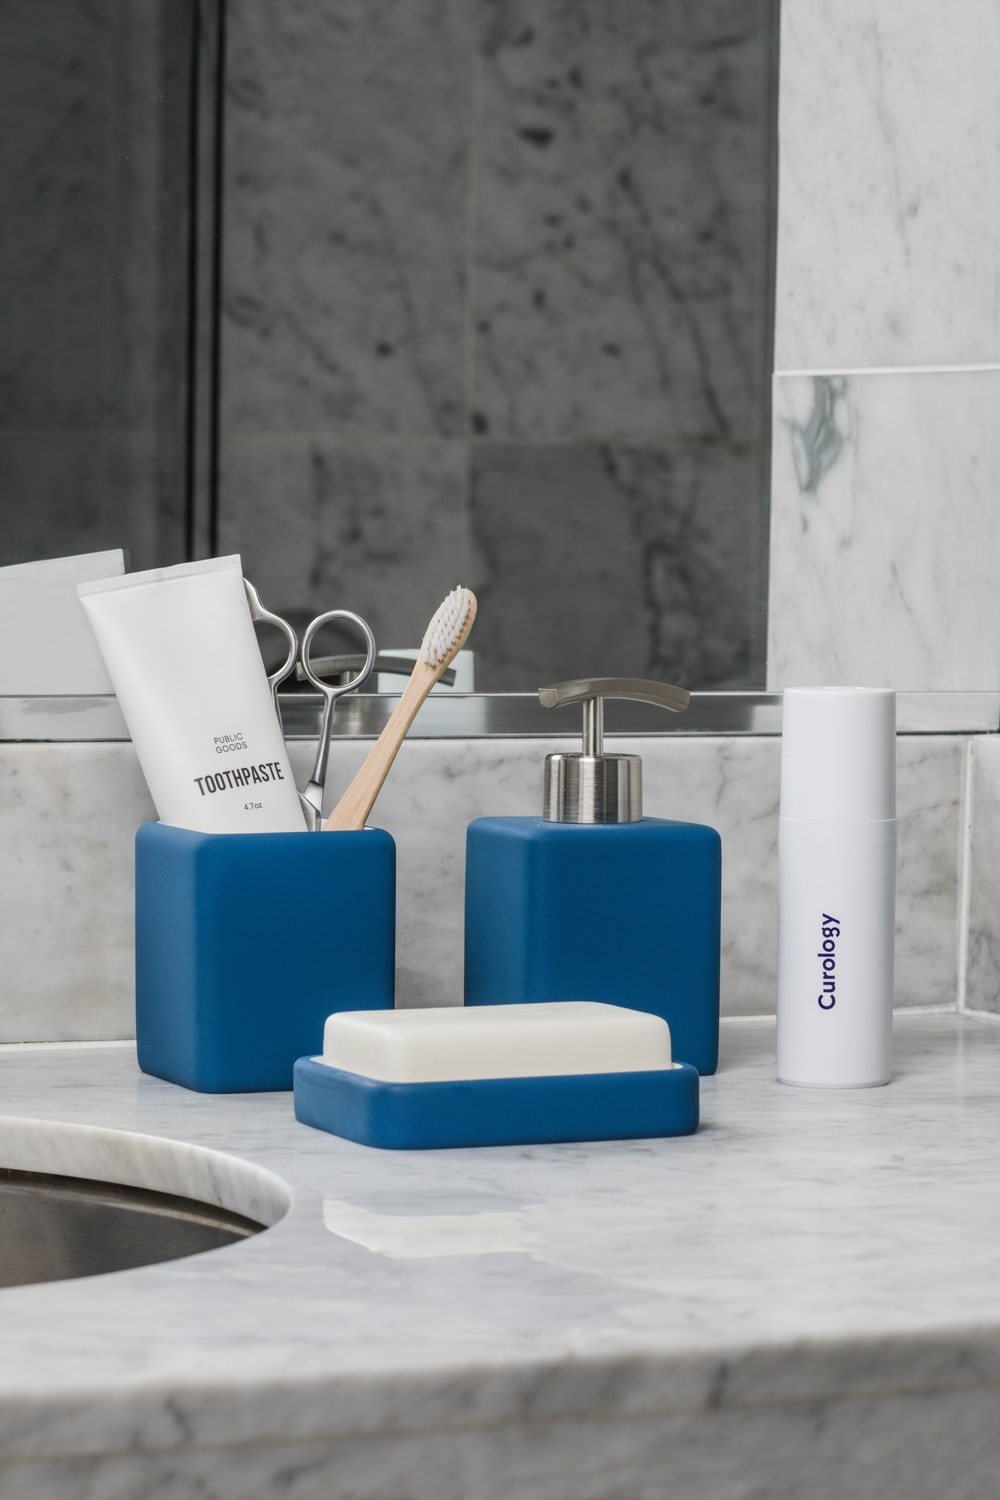 white soft-tube and brown brush in blue container beside pump bottle